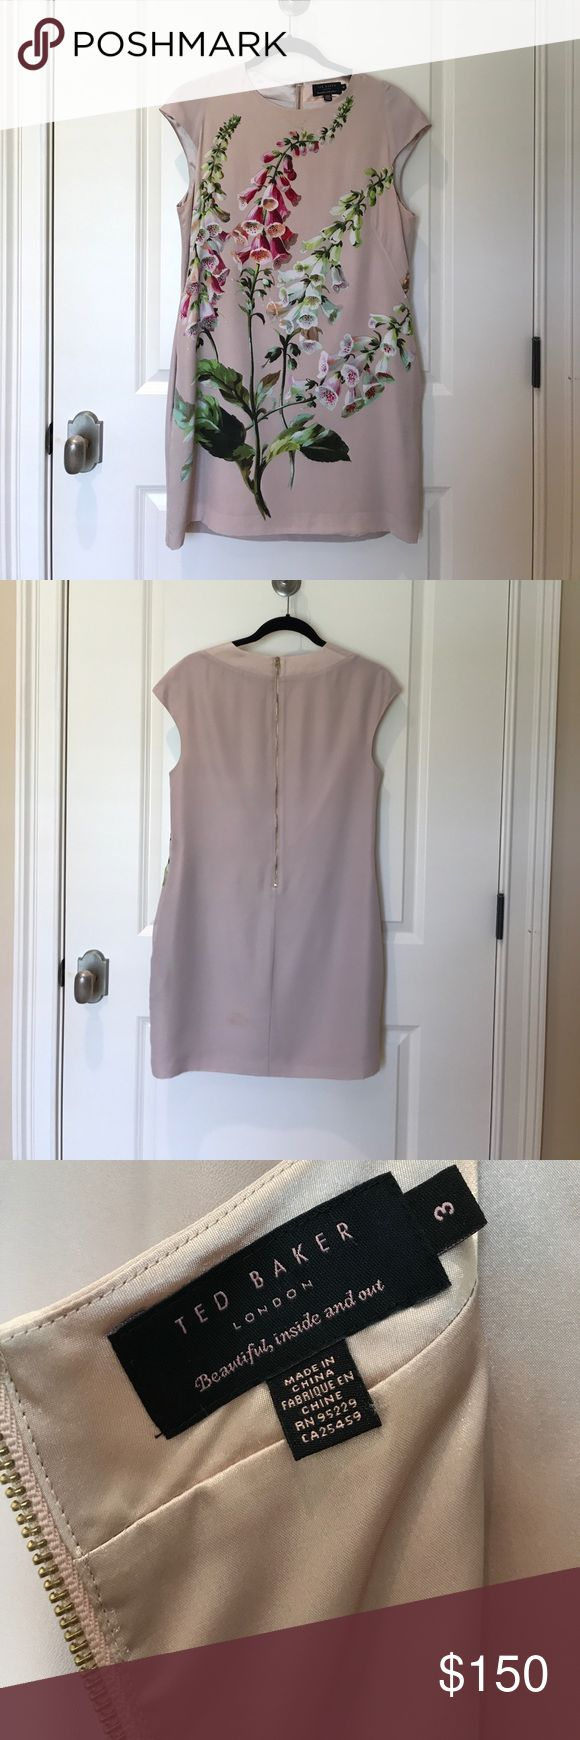 Ted Baker London Foxglove Print Silk Dress Sz 3 Beautiful botanical 100% silk dress with pockets! Perfect for a summer wedding  or even the office. Attached is a Ted Baker sizing chart. Two makeup stains pictured. Ted Baker London Dresses Mini